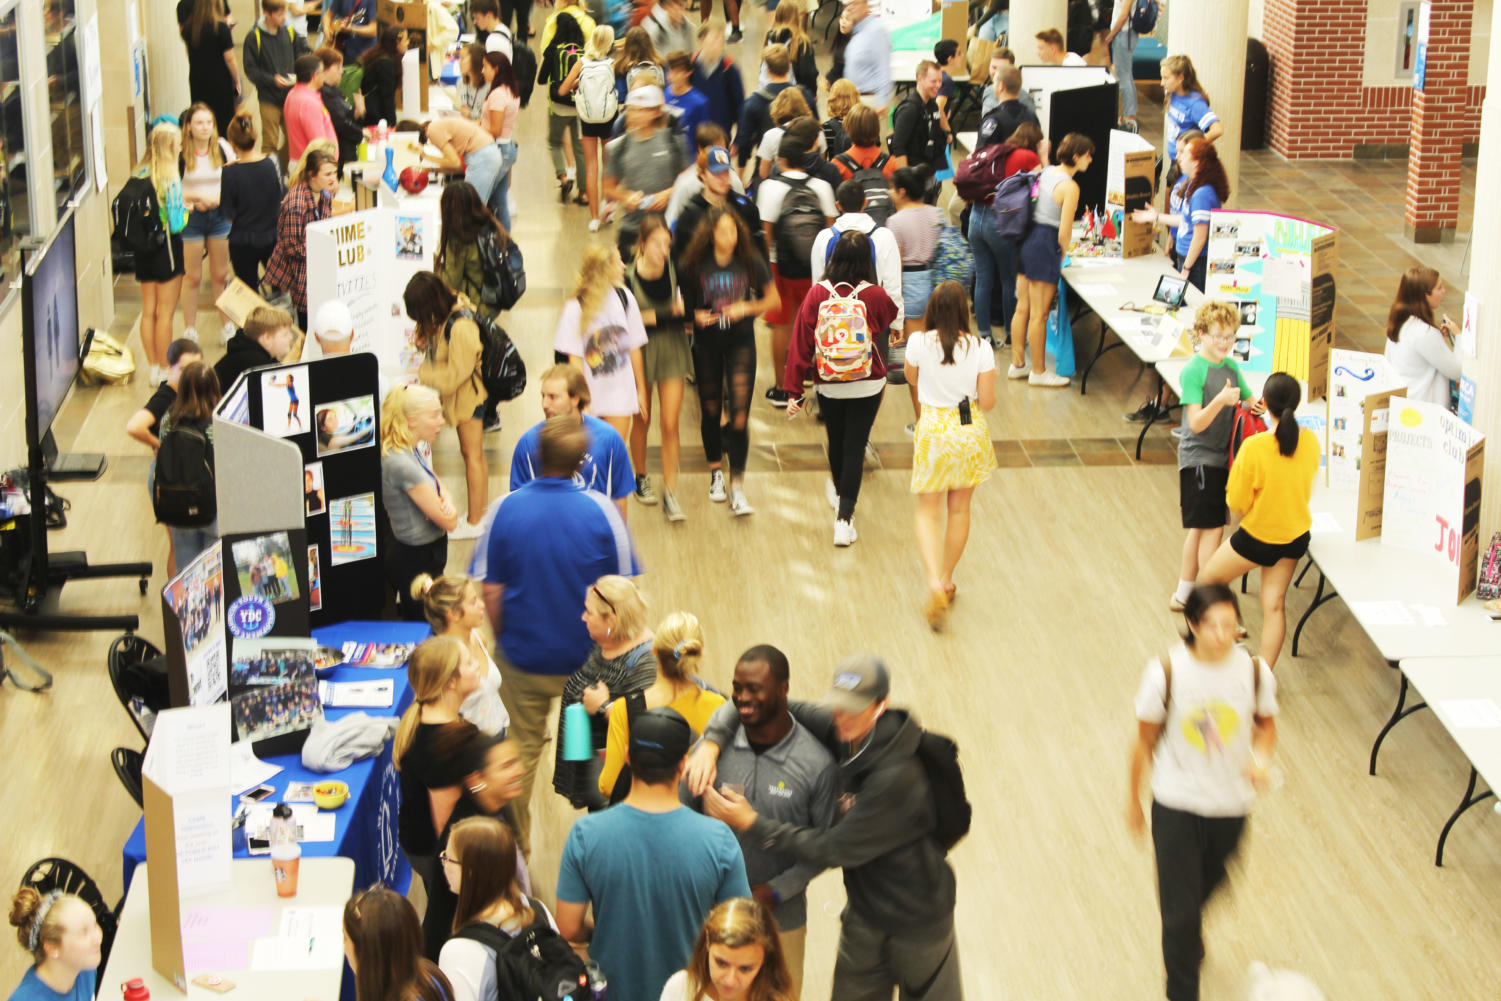 Students peruse around the fair to find new opportunities.